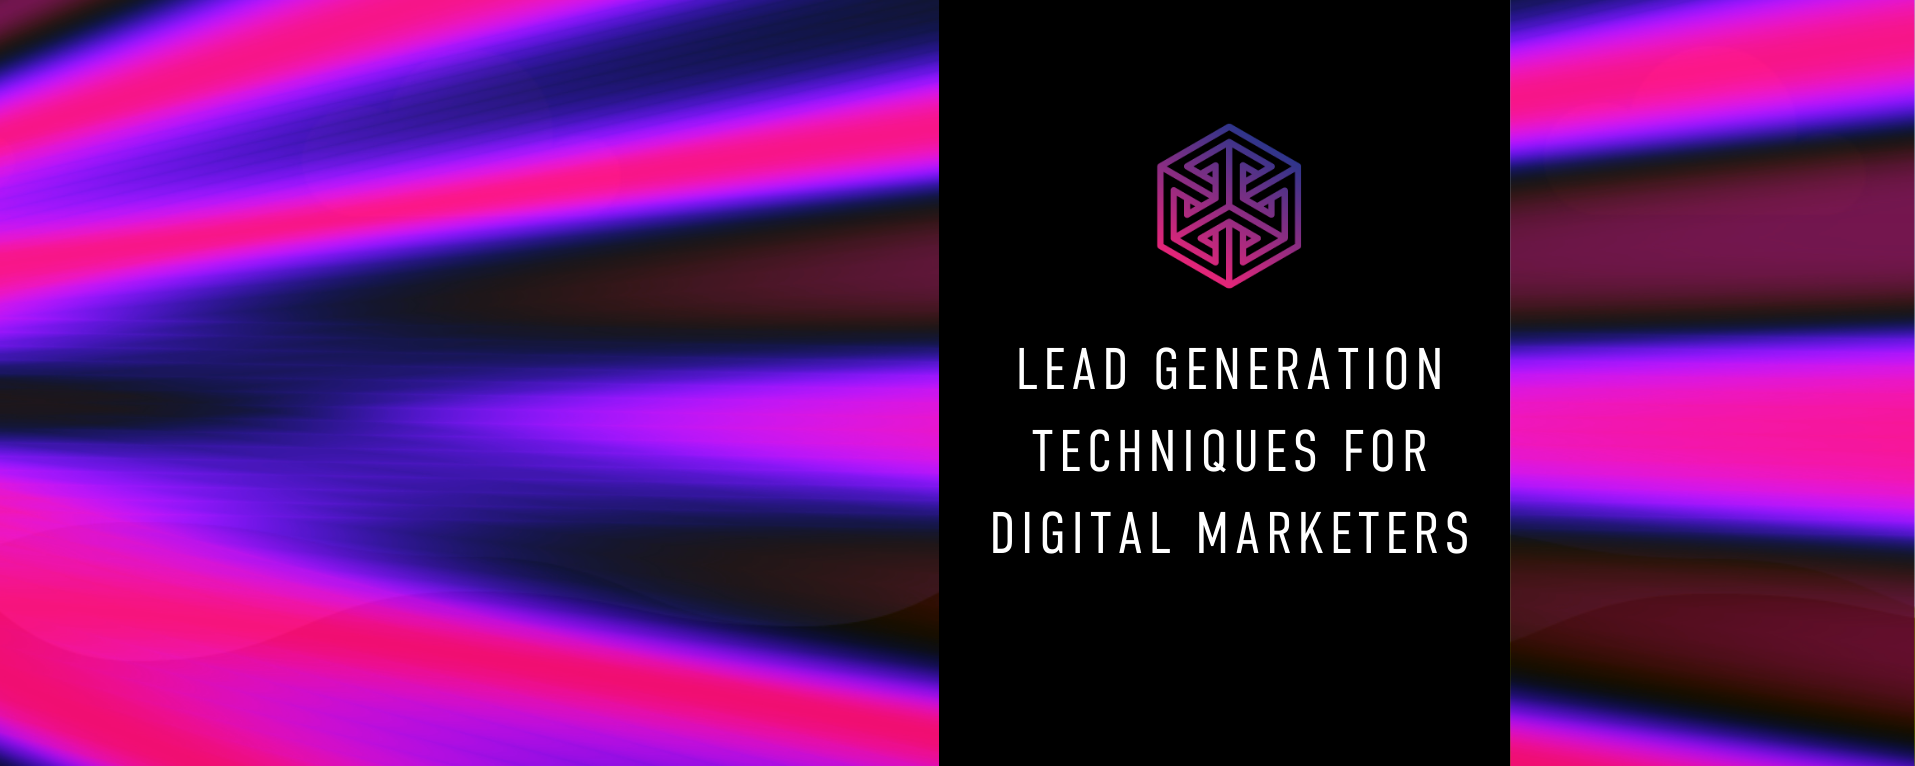 Lead Generation Techniques For Digital Marketers